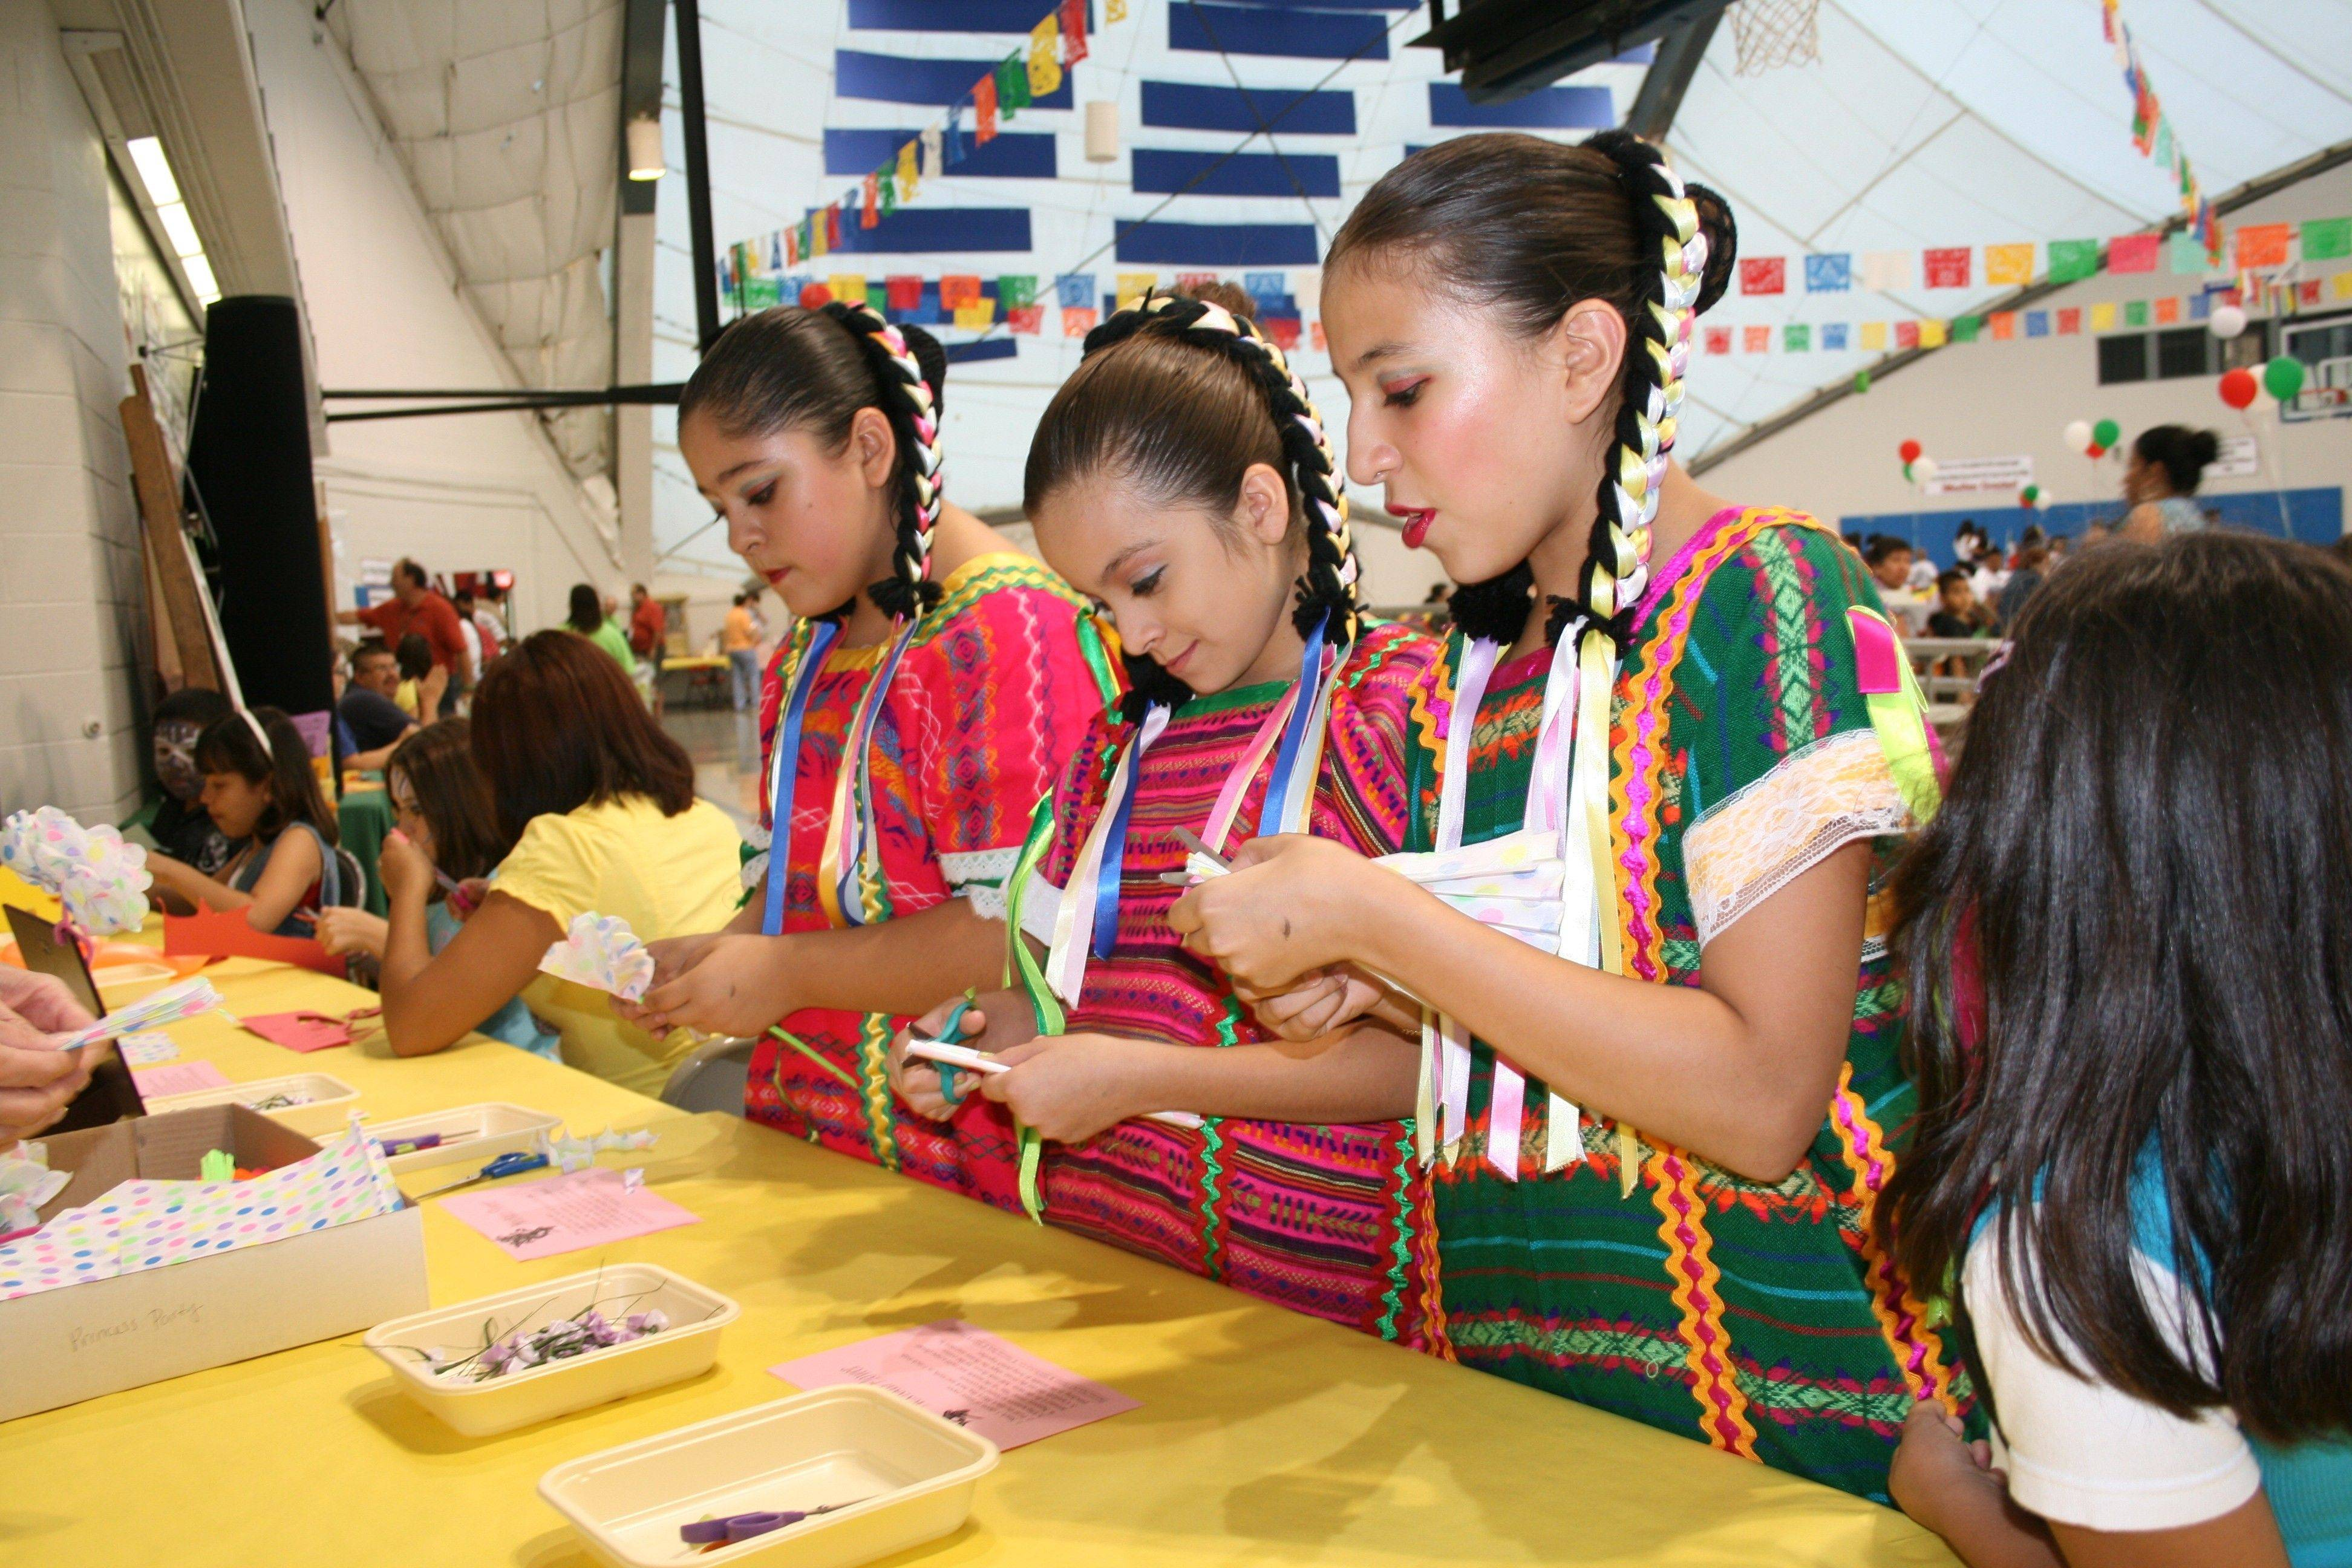 The folkloric dancers of Mission San Juan Diego enjoy making crafts after their performance at the sixth annual Mexican Independence Day Celebration in Hanover Park. Bring the family to celebrate the eighth annual Mexican Independence Day Celebration from 6-10 p.m. Friday, Sept. 16, at the Community Center Gym, in Hanover Park.